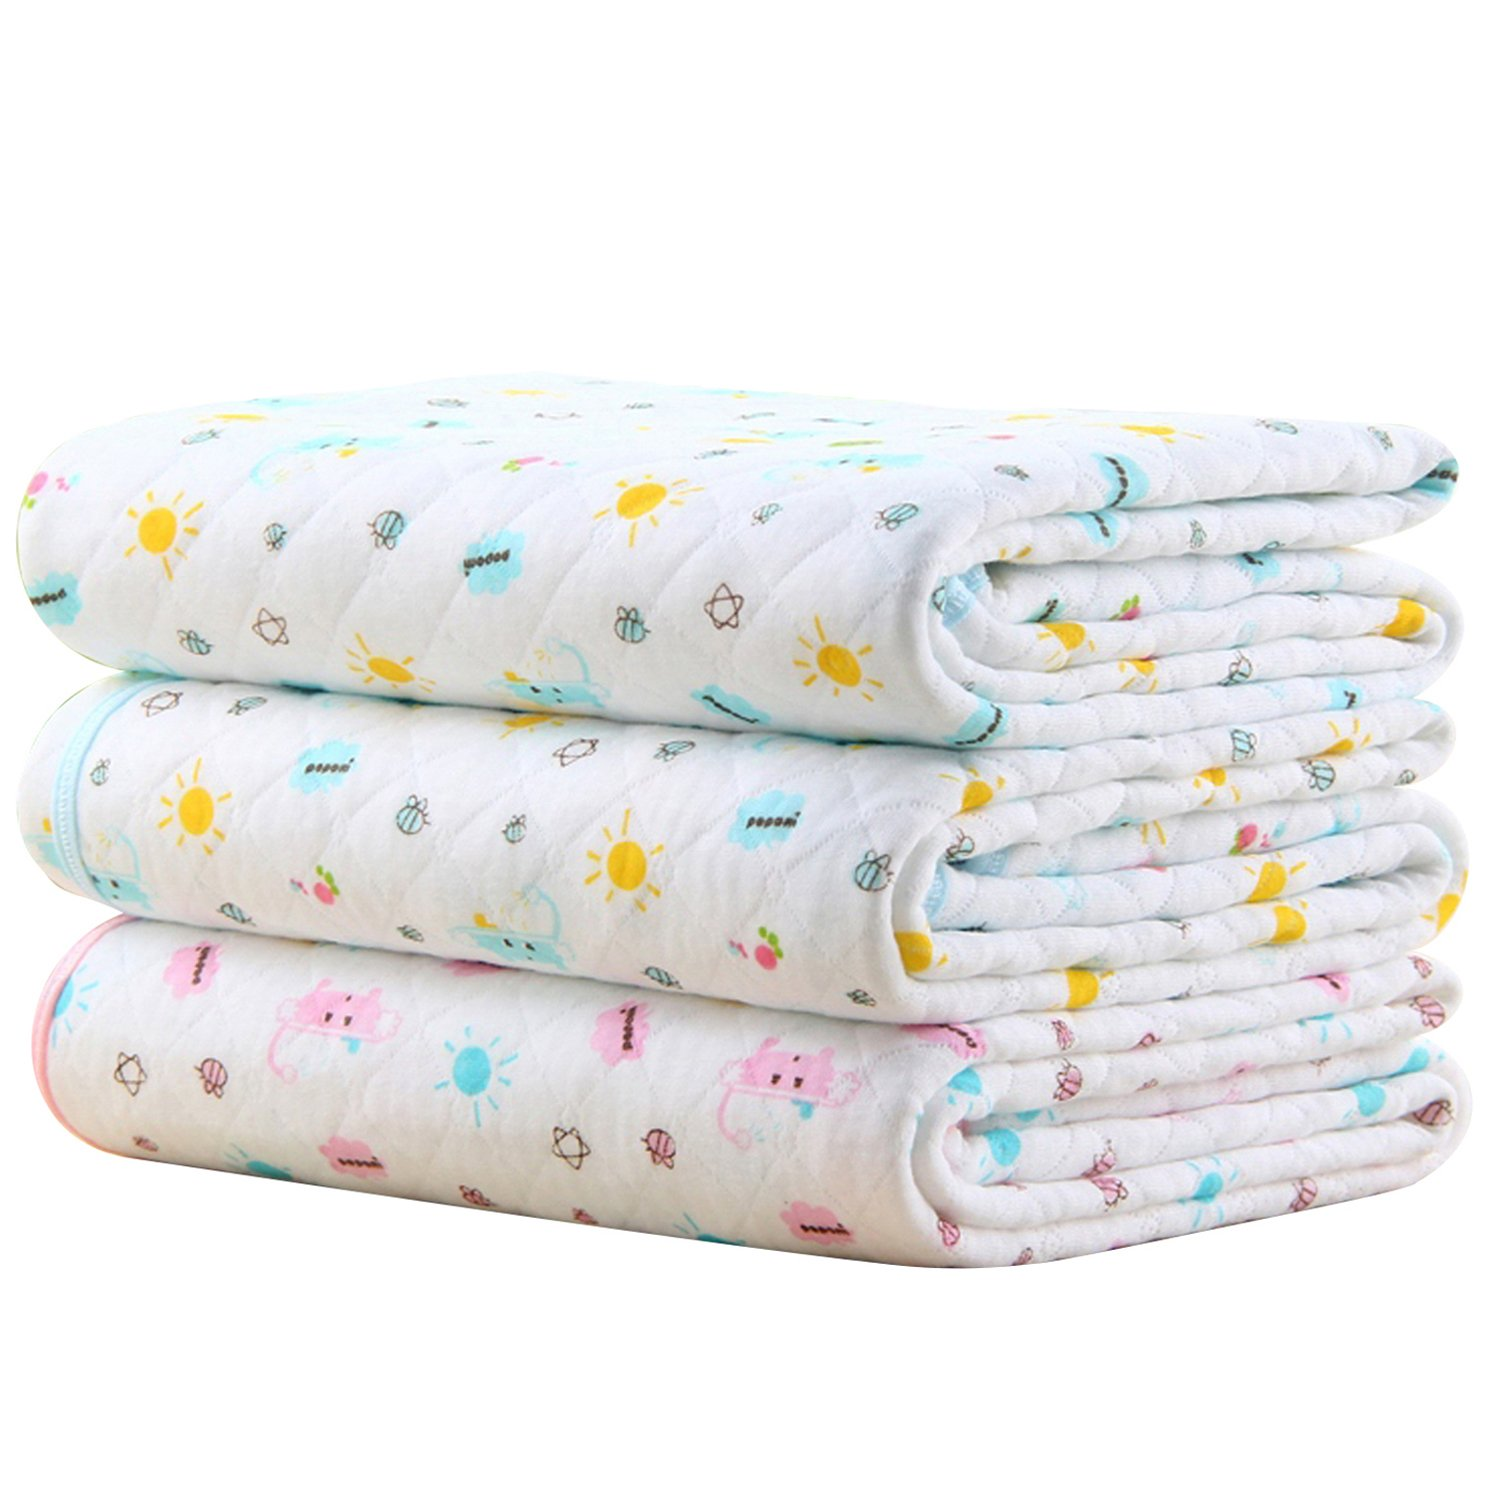 MBJERRY Waterproof Changing Pads Portable - Breathable Leak Proof Mattress Pad Protector Baby Changing Mat for Toddler, Kids Pack of 3 (M (27.5 x 19.7 Inch)) by MBJERRY